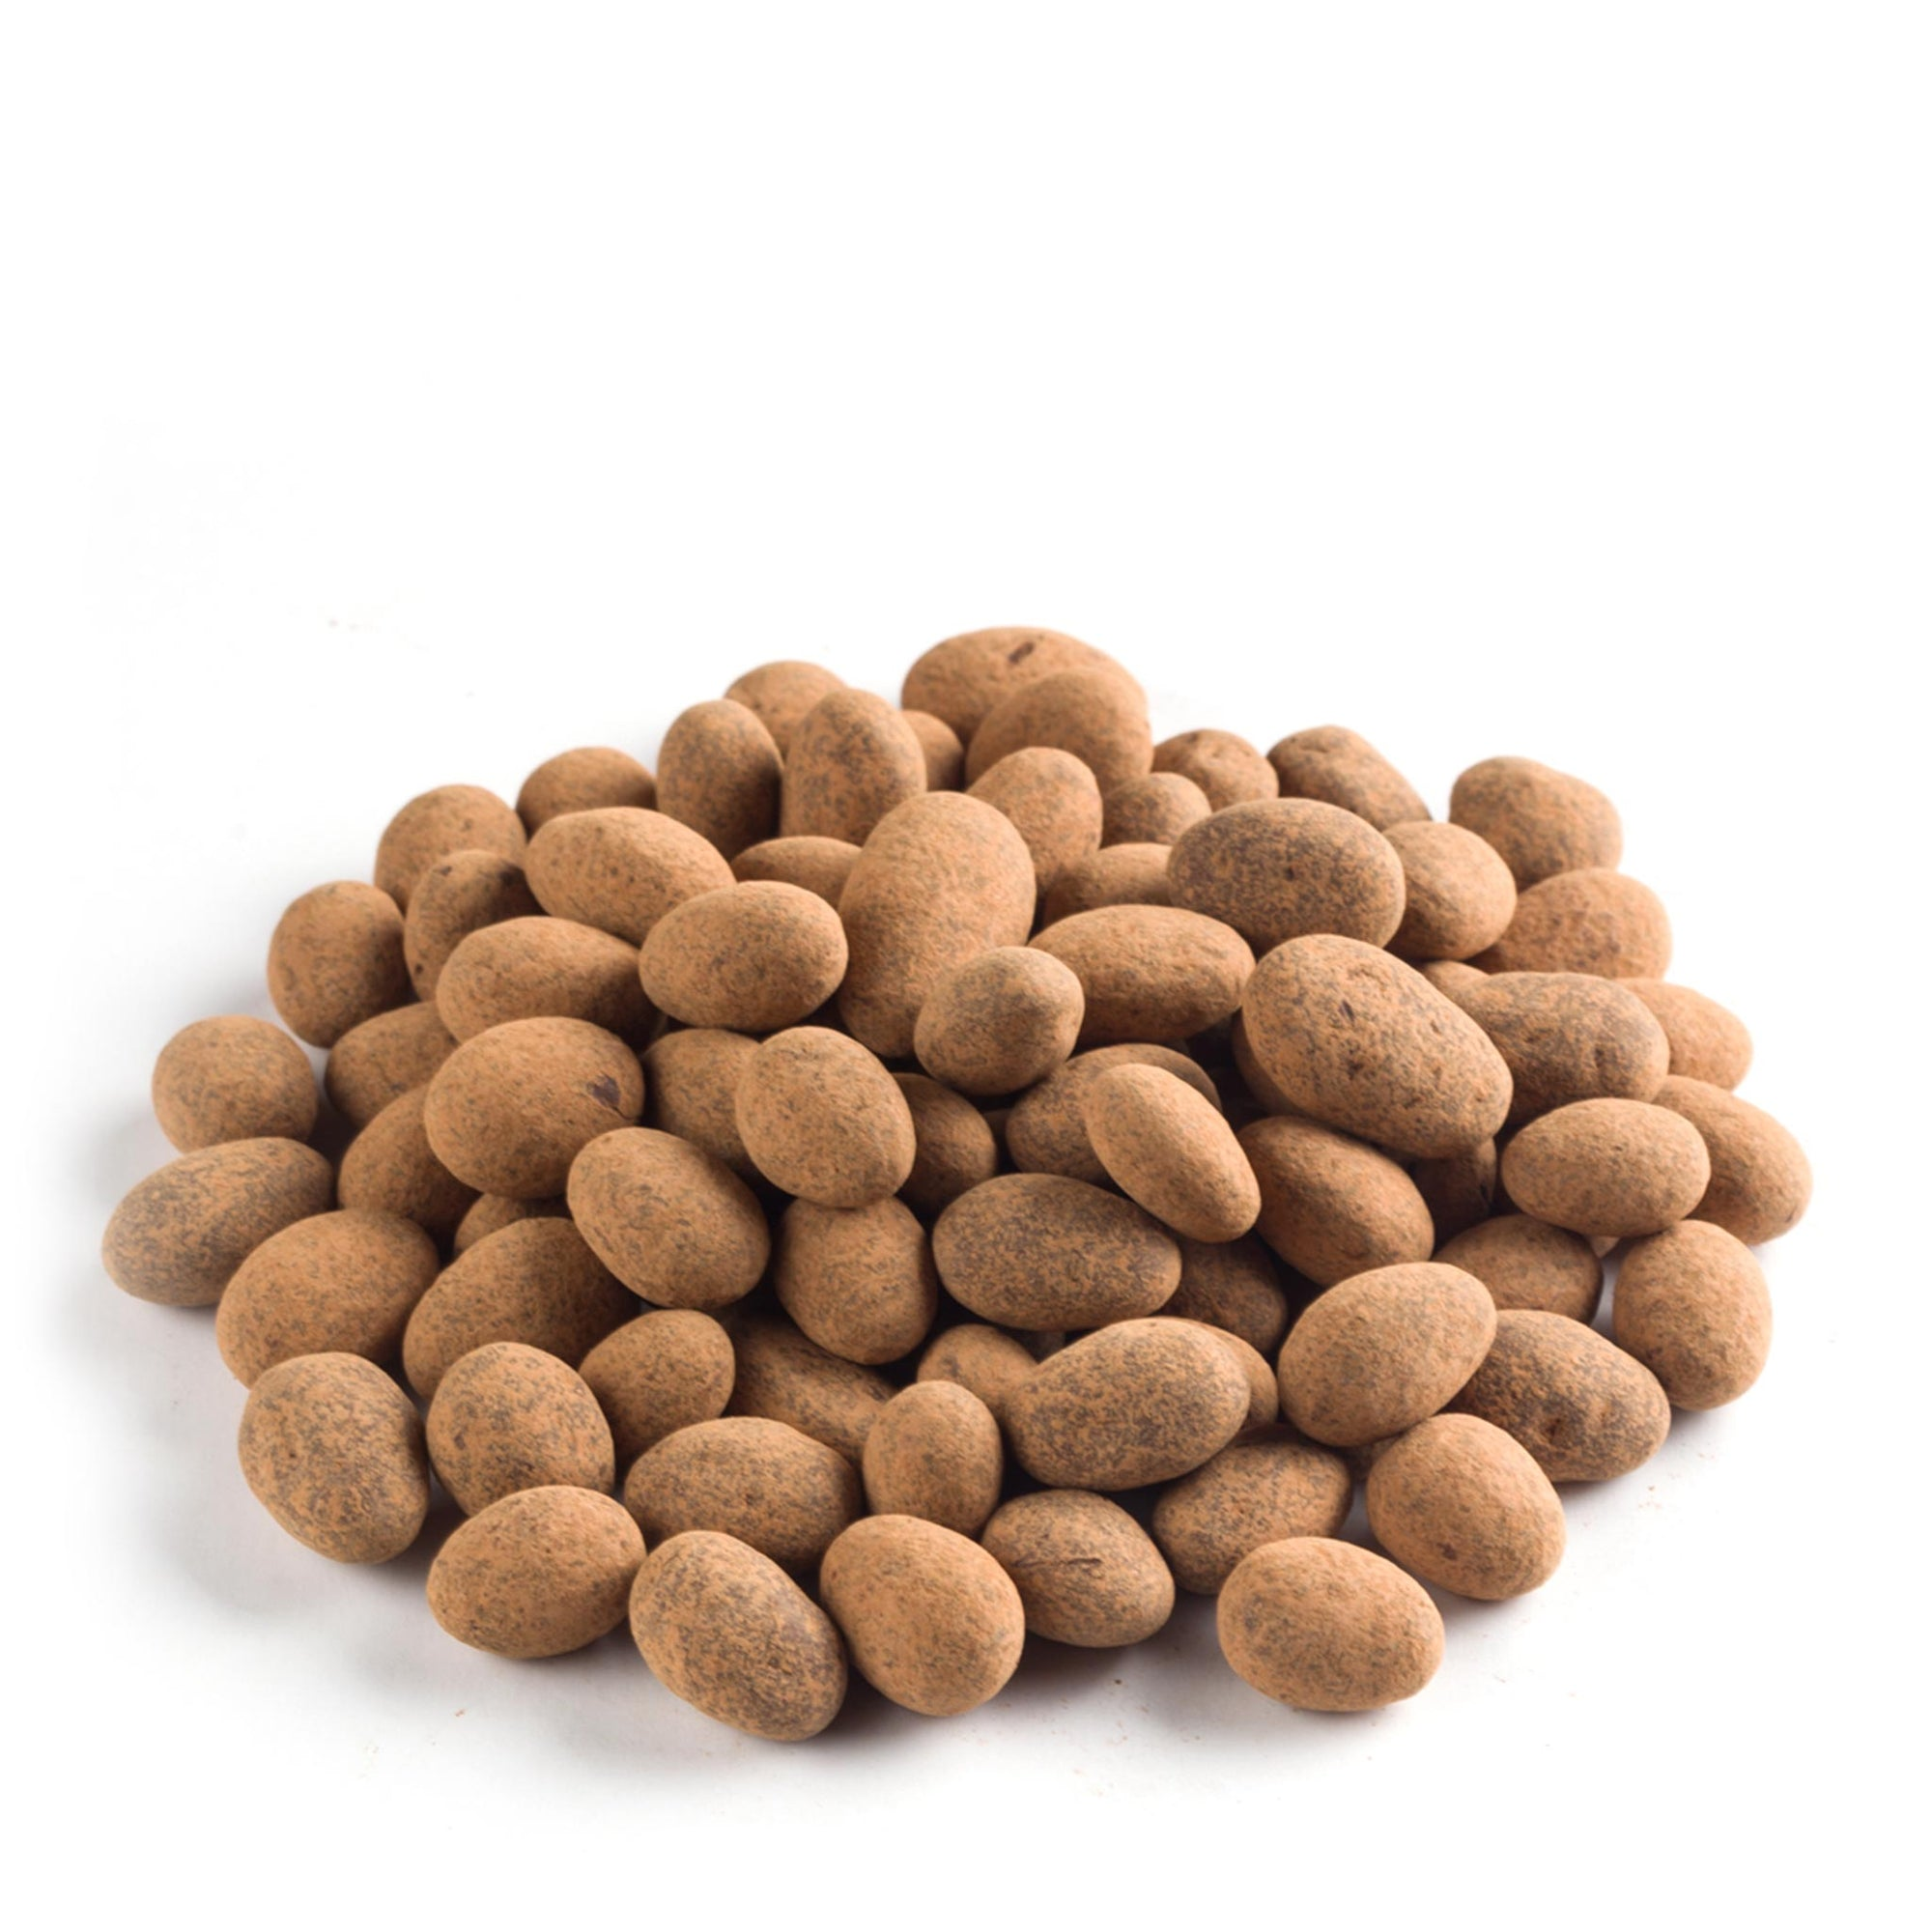 Raw Chocolate Almonds Bulk - The Raw Chocolate Company